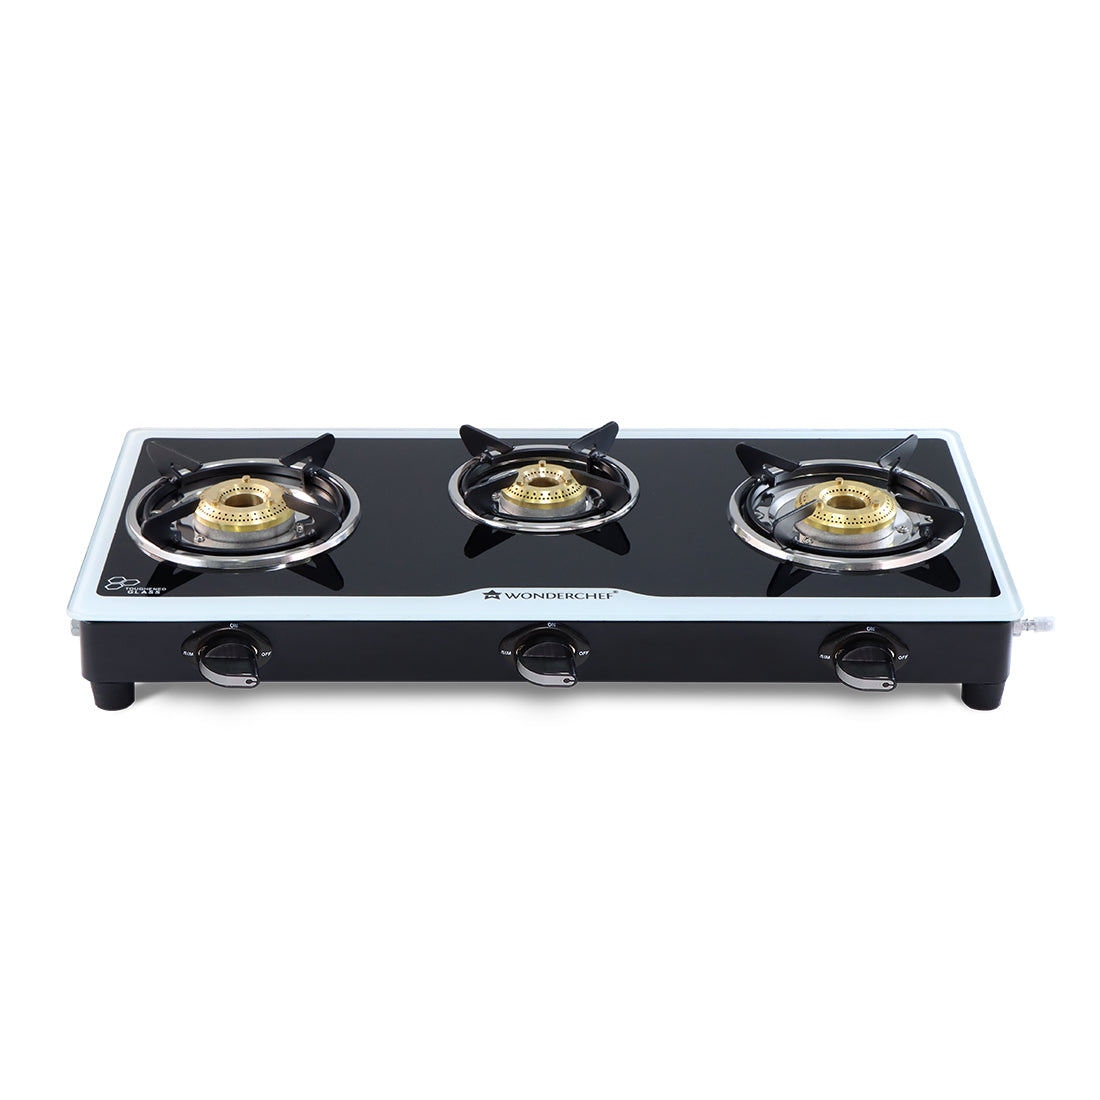 Platinum 3 Burner Glass Cooktop, Black 6mm Toughened Glass with 1 Year Warranty, Ergonomic Knobs, Stainless Steel Drip Tray, Manual Ignition Gas Stove